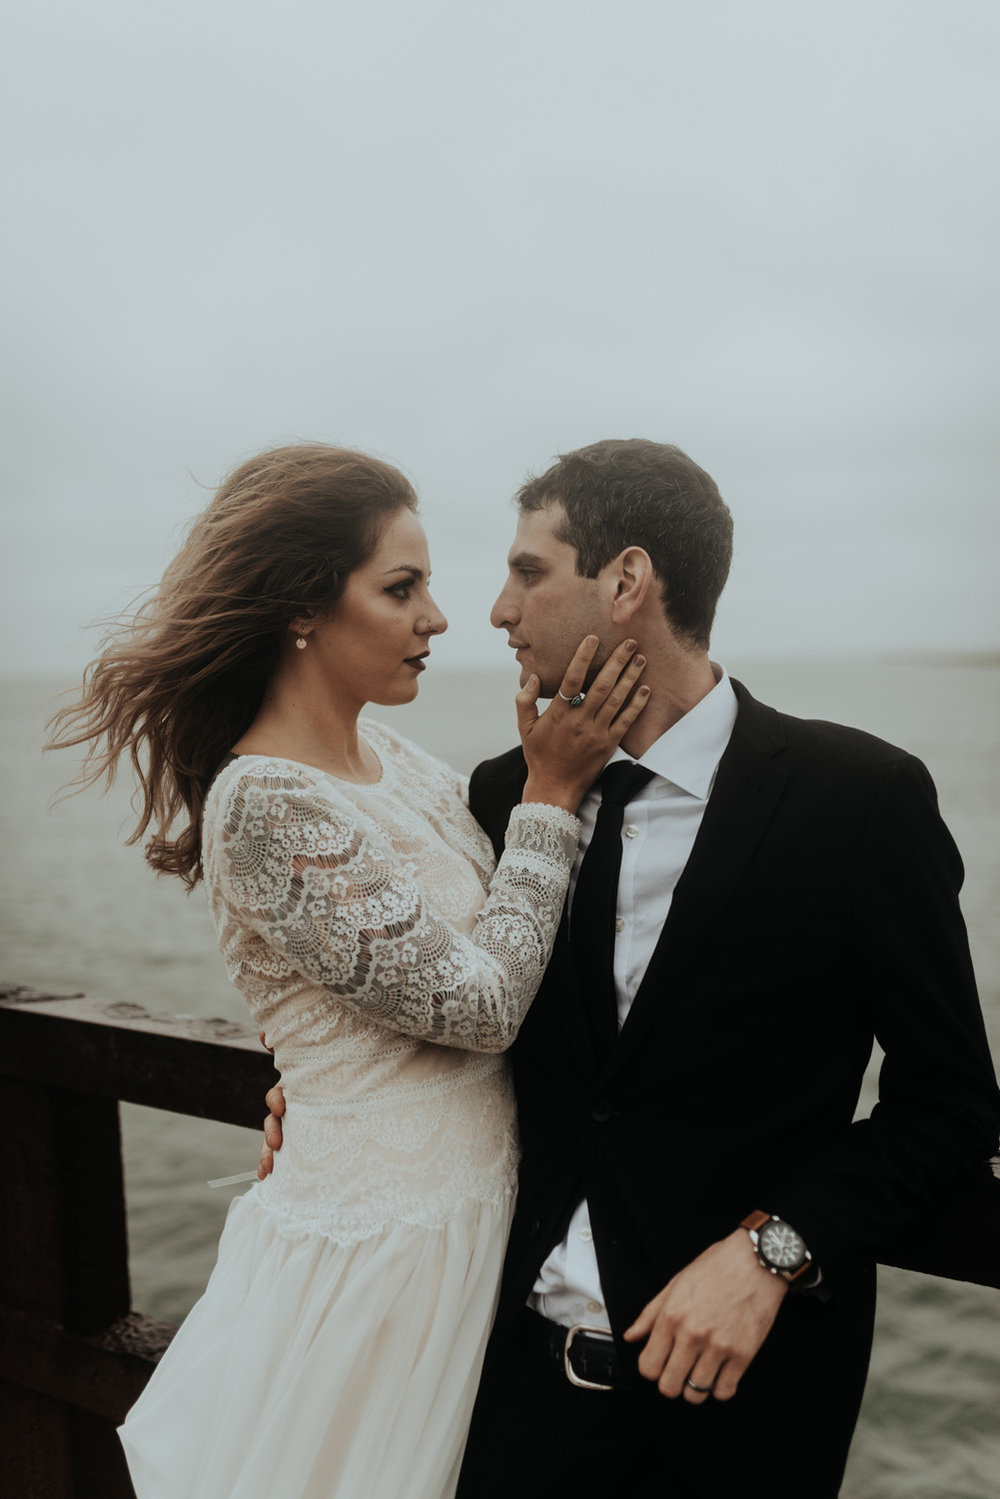 kylewillisphoto_kyle_Willis_Photography_liz_gibbs_brigantine_beach_atlantic_city_wedding_philadelphia_jersey_shore_new_nyc_engagement_delaware_engaged_married_rainy_photos_ac_boho.jpg